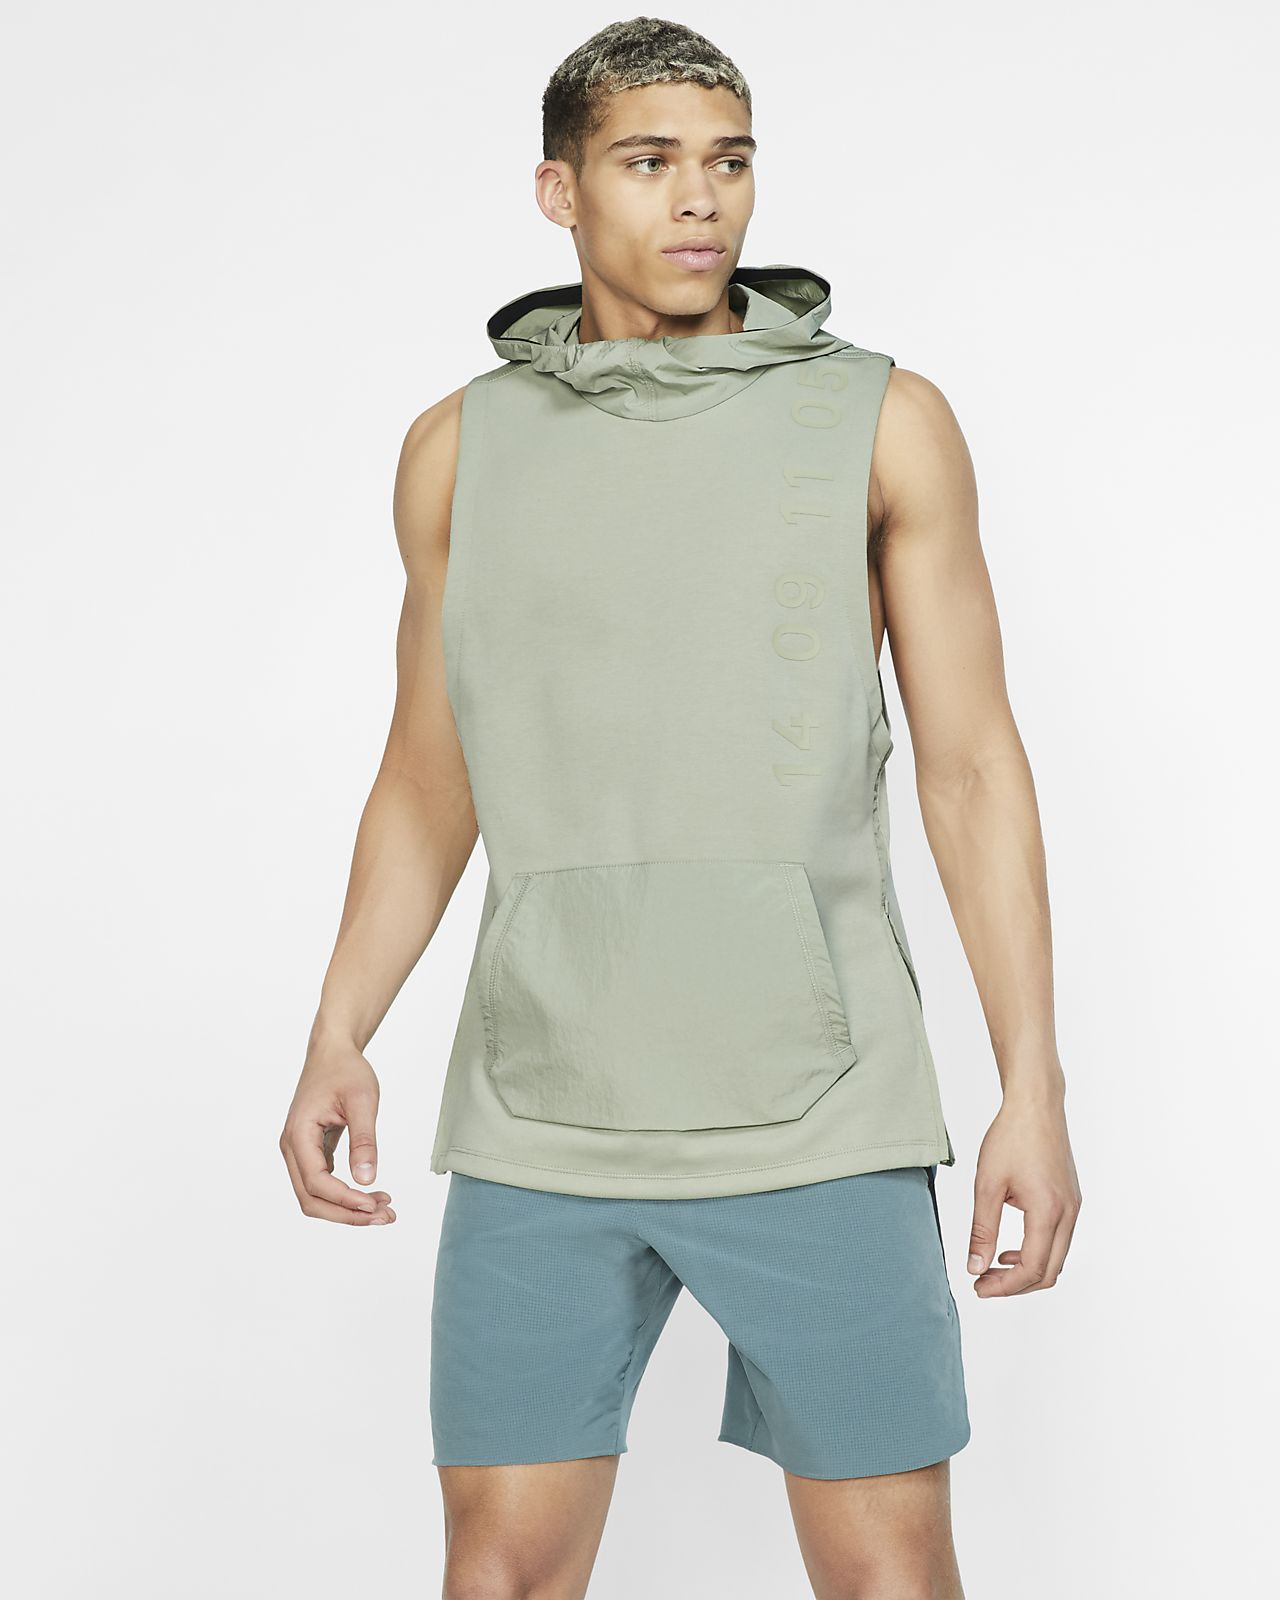 Nike Therma Tech Pack Men's Hooded Sleeveless Training Top